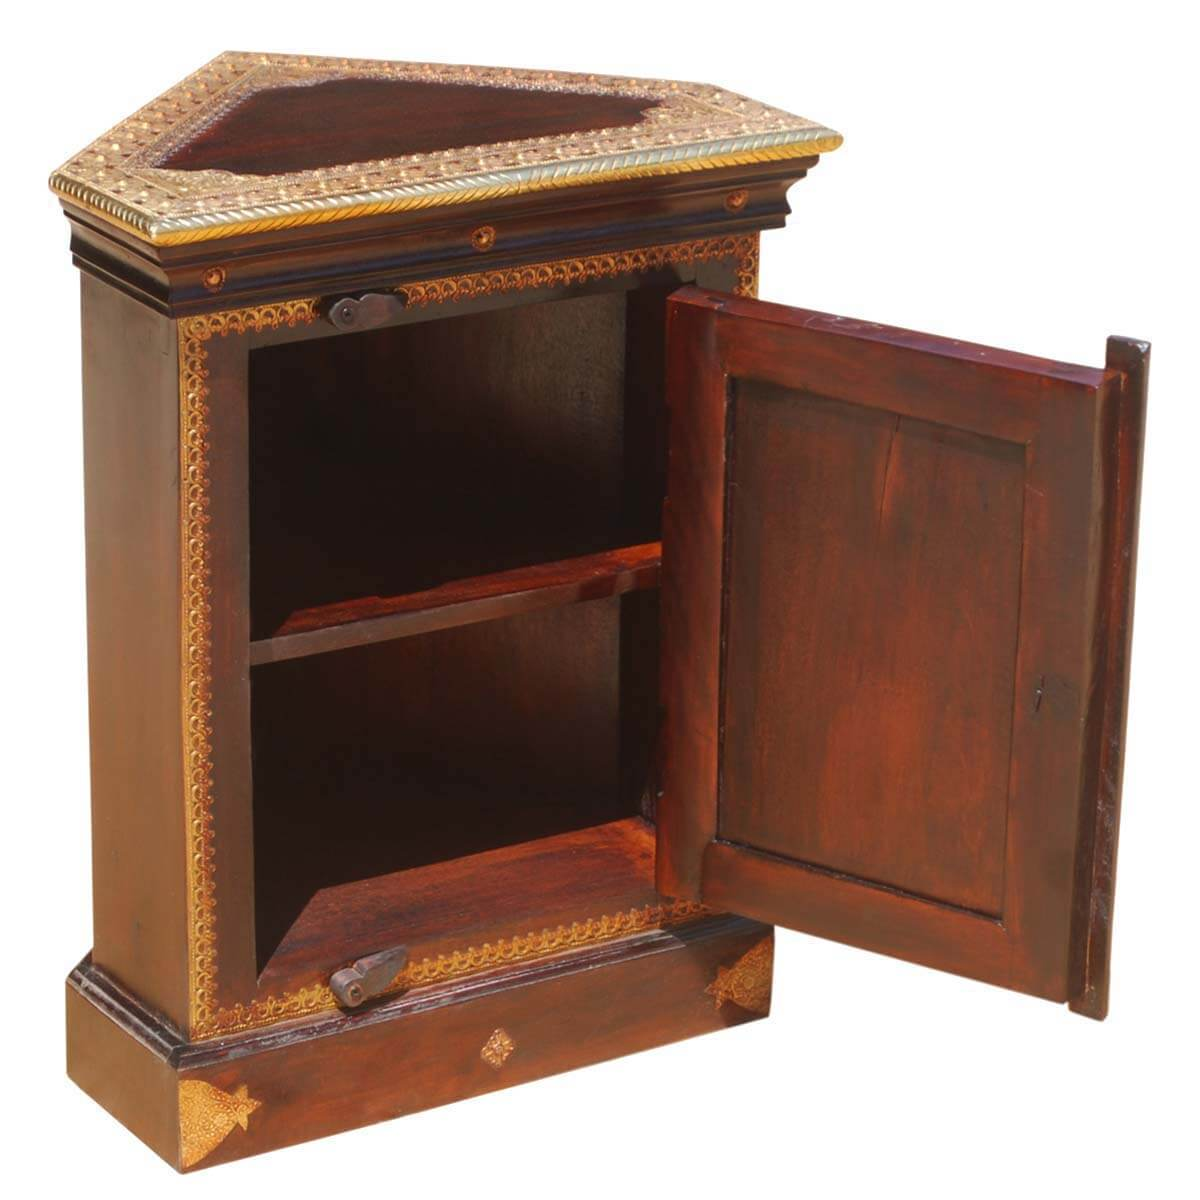 heritage handcrafted brass inlay solid wood corner end table. Black Bedroom Furniture Sets. Home Design Ideas